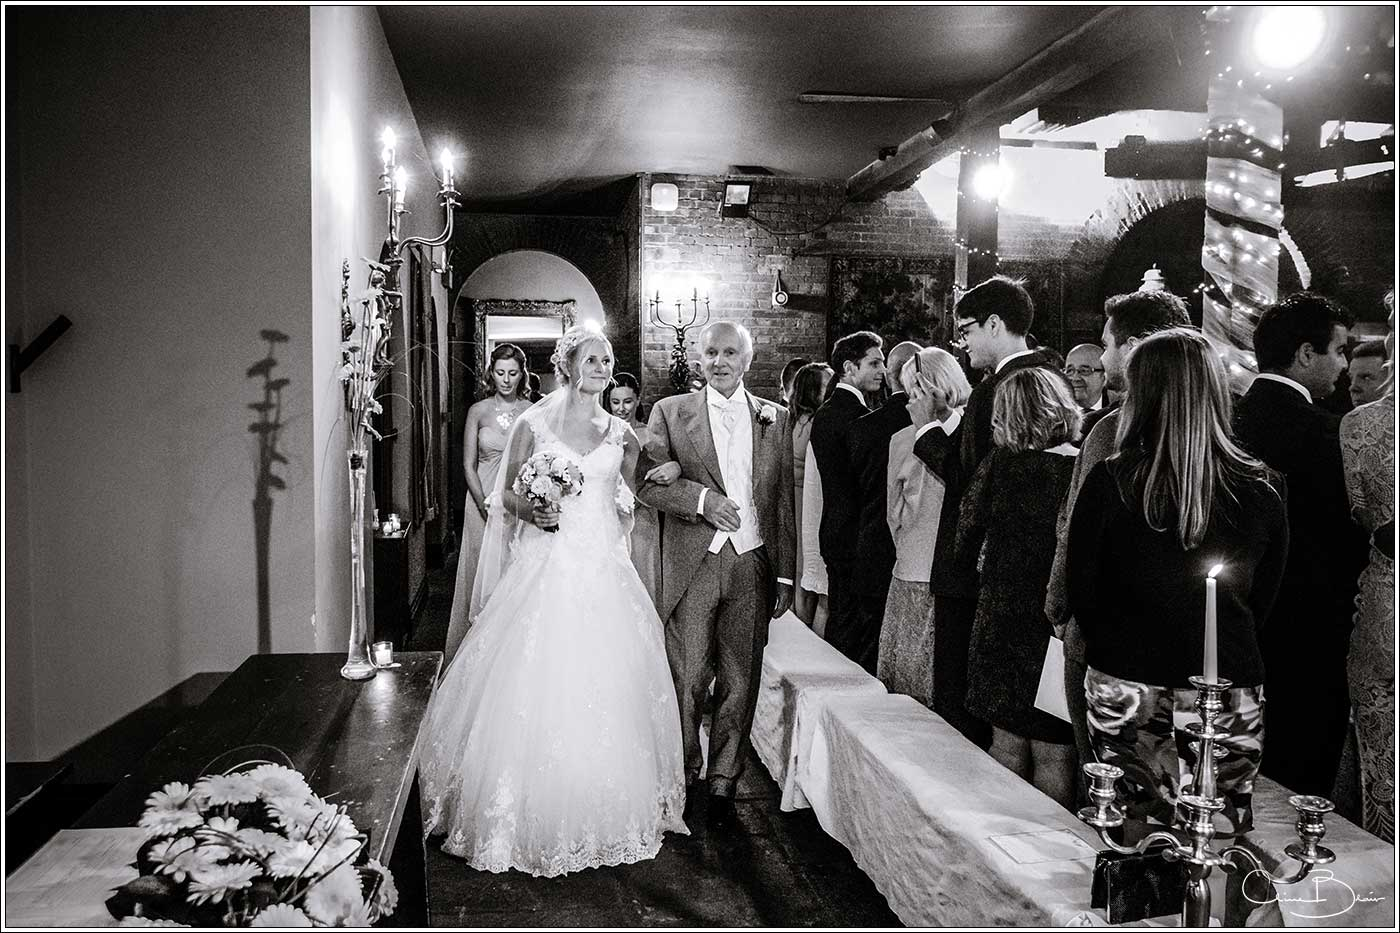 Coombe Abbey wedding photography showing bride entering the wedding ceremony in the Abbeygate